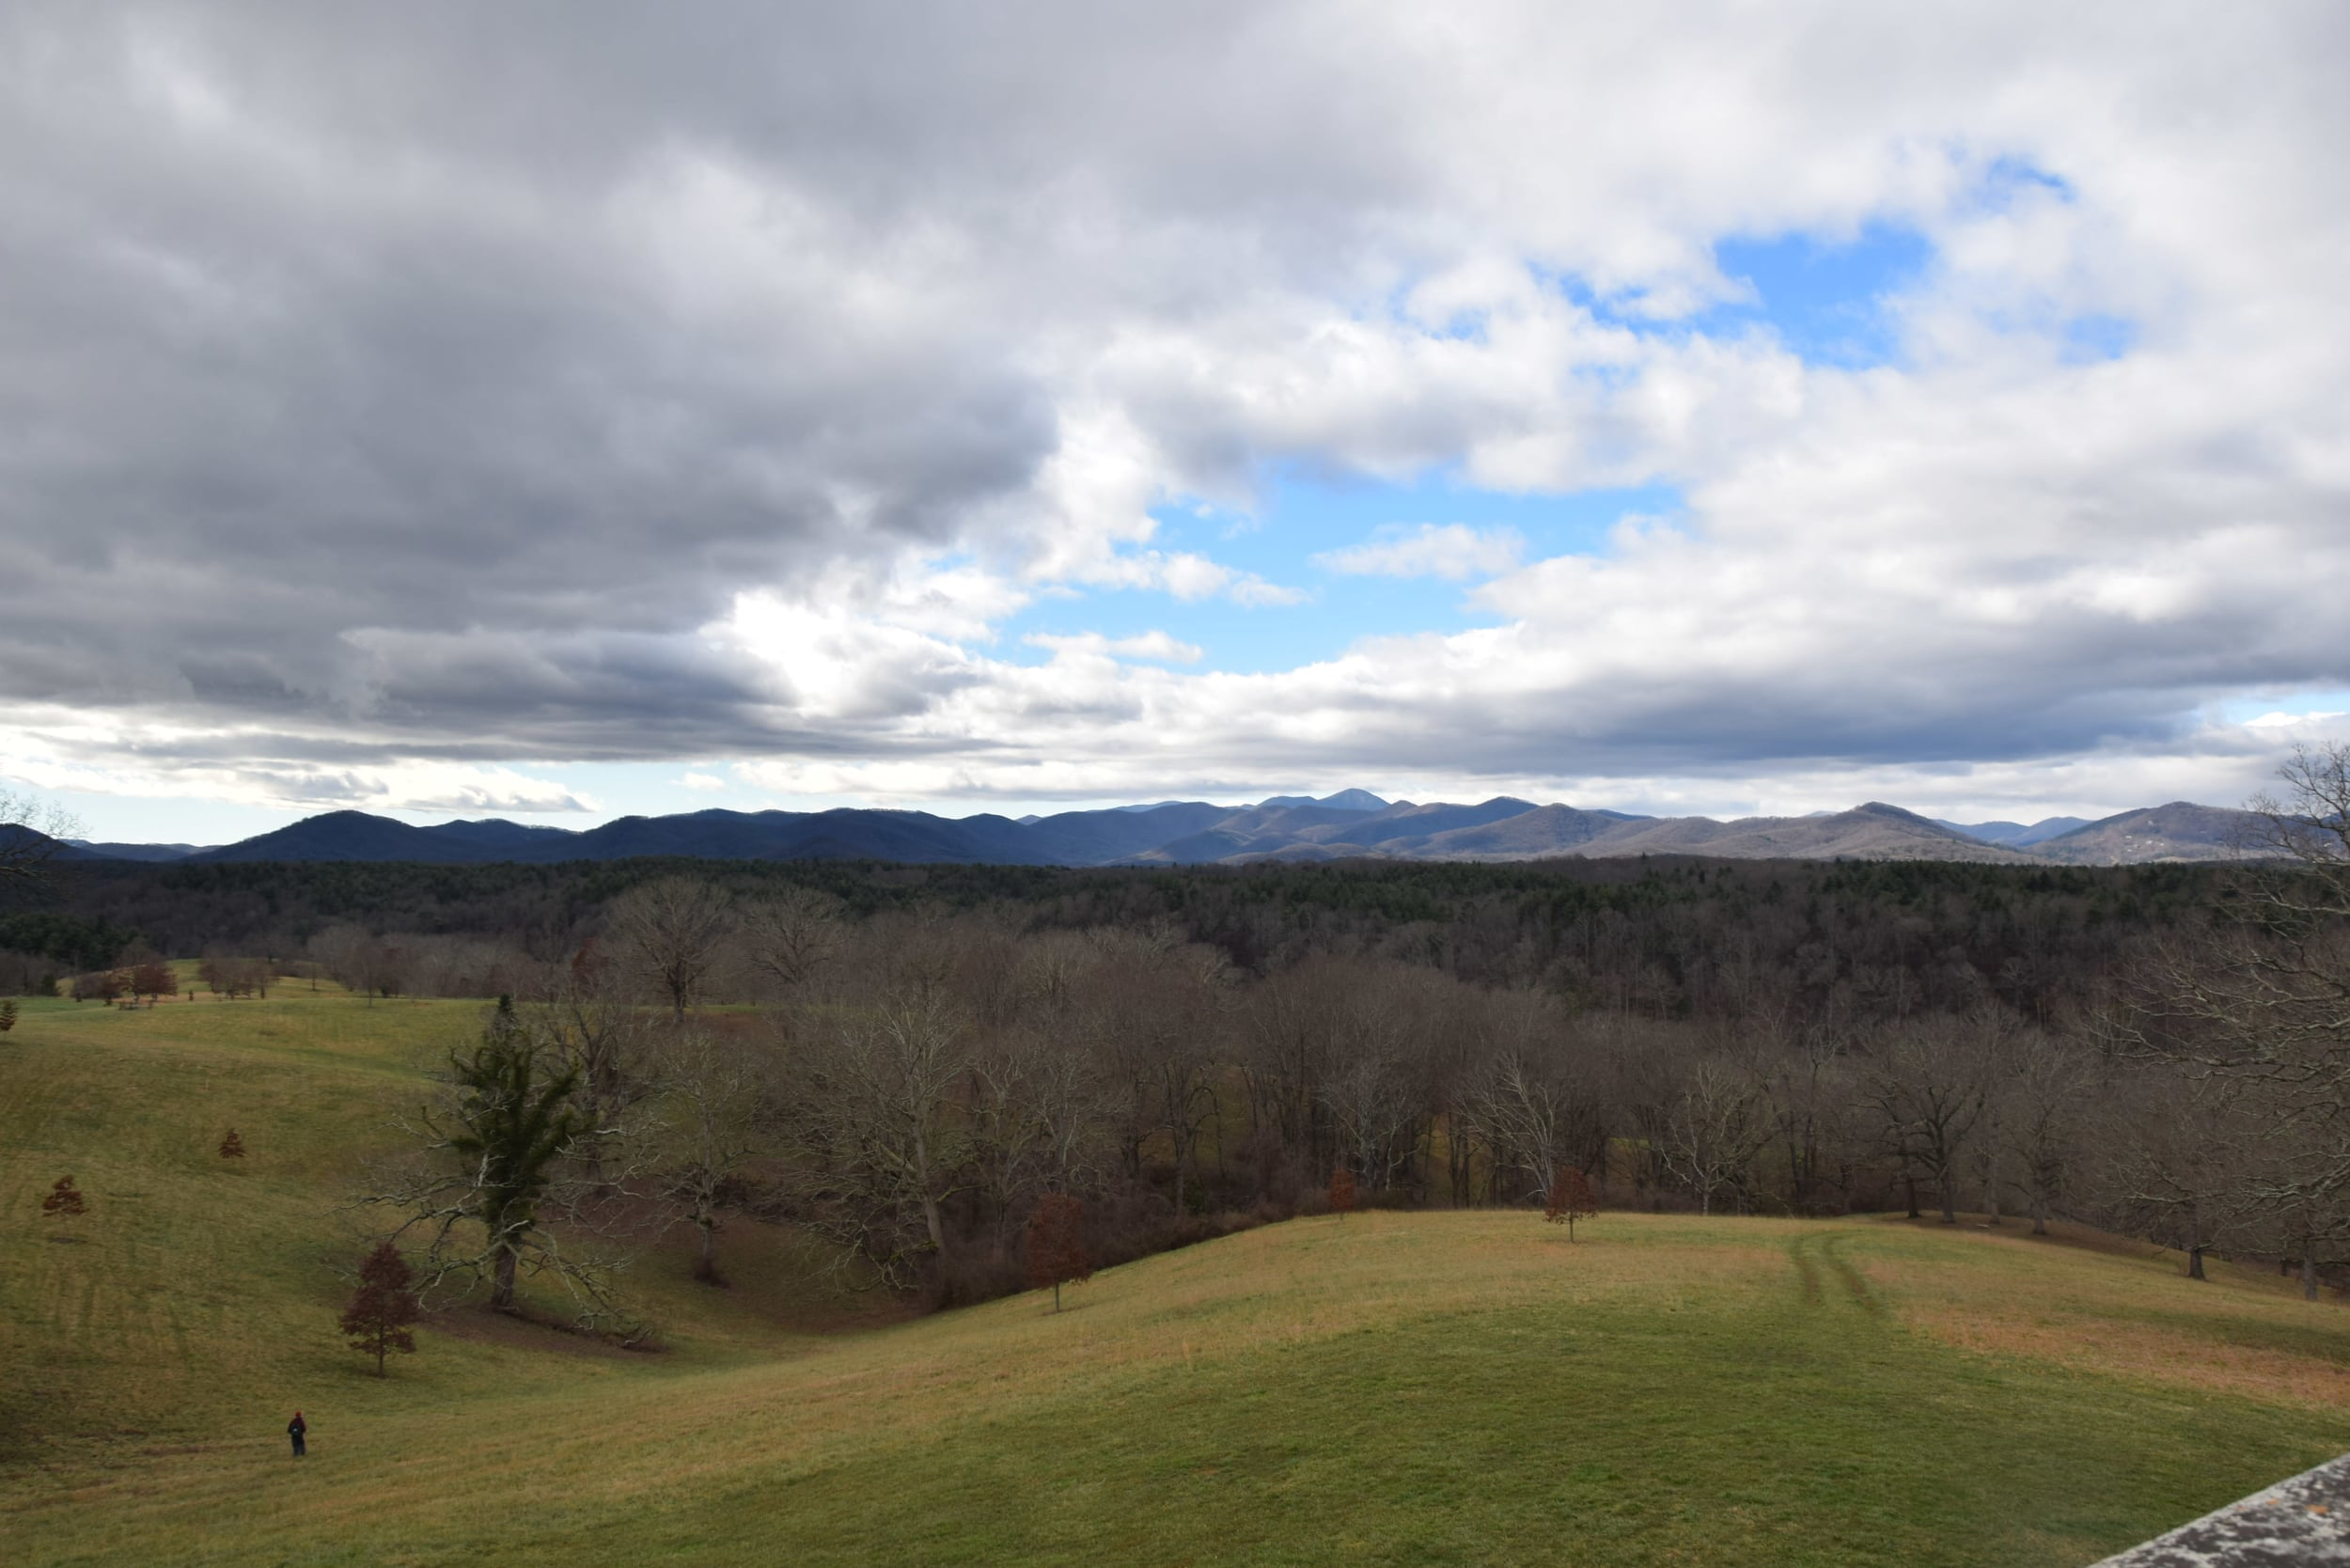 The Blue Ridge Mountains, no Photoshop or other alteration.